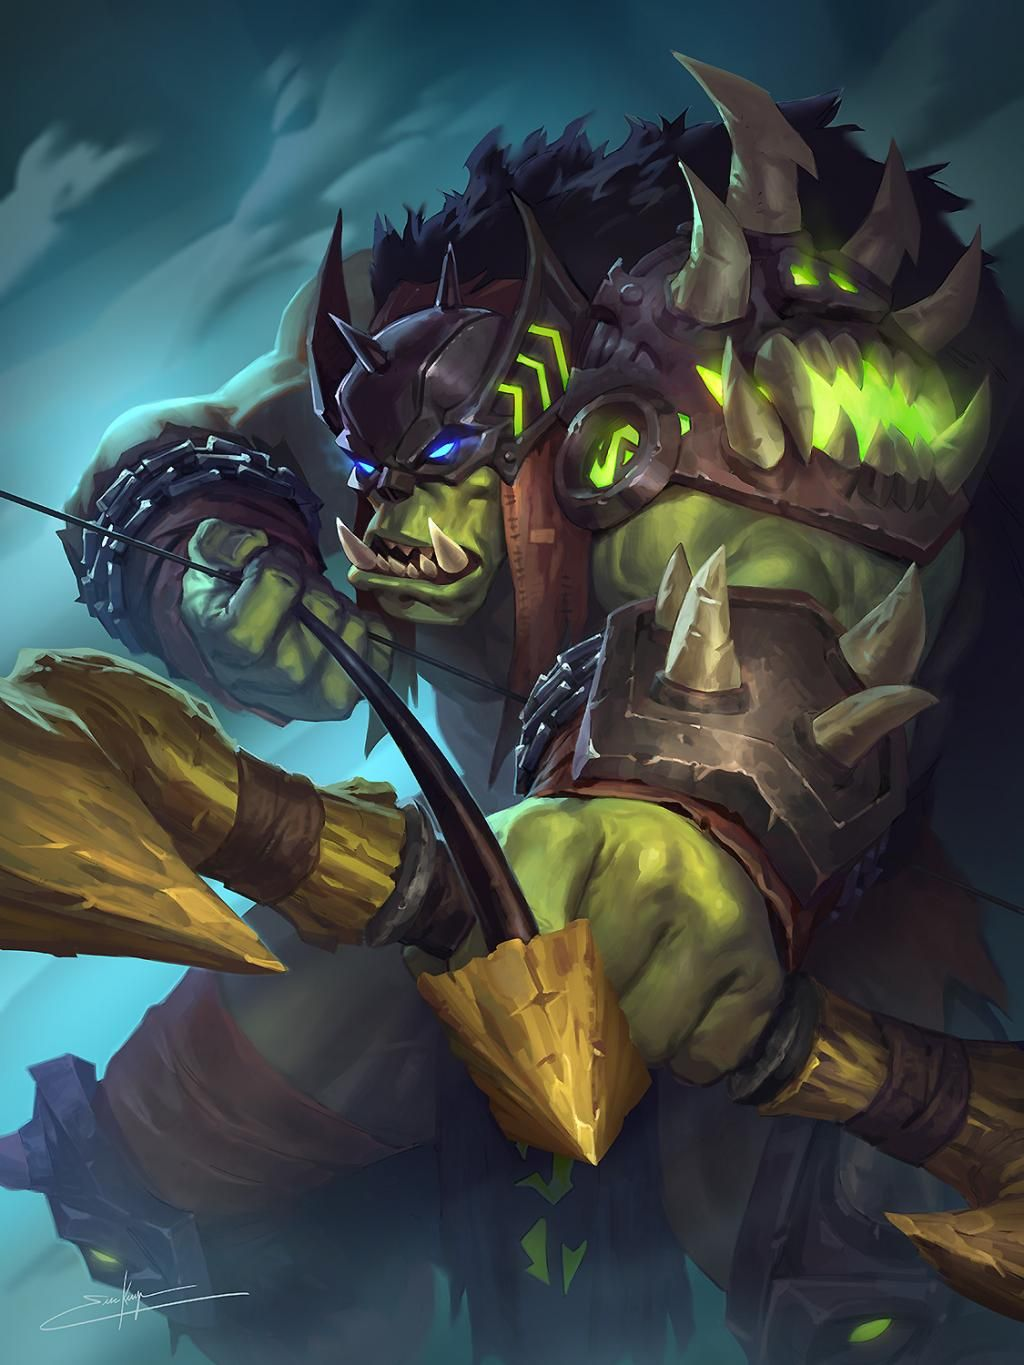 Let's share our favorite Warcraft fan-art! - Page 308